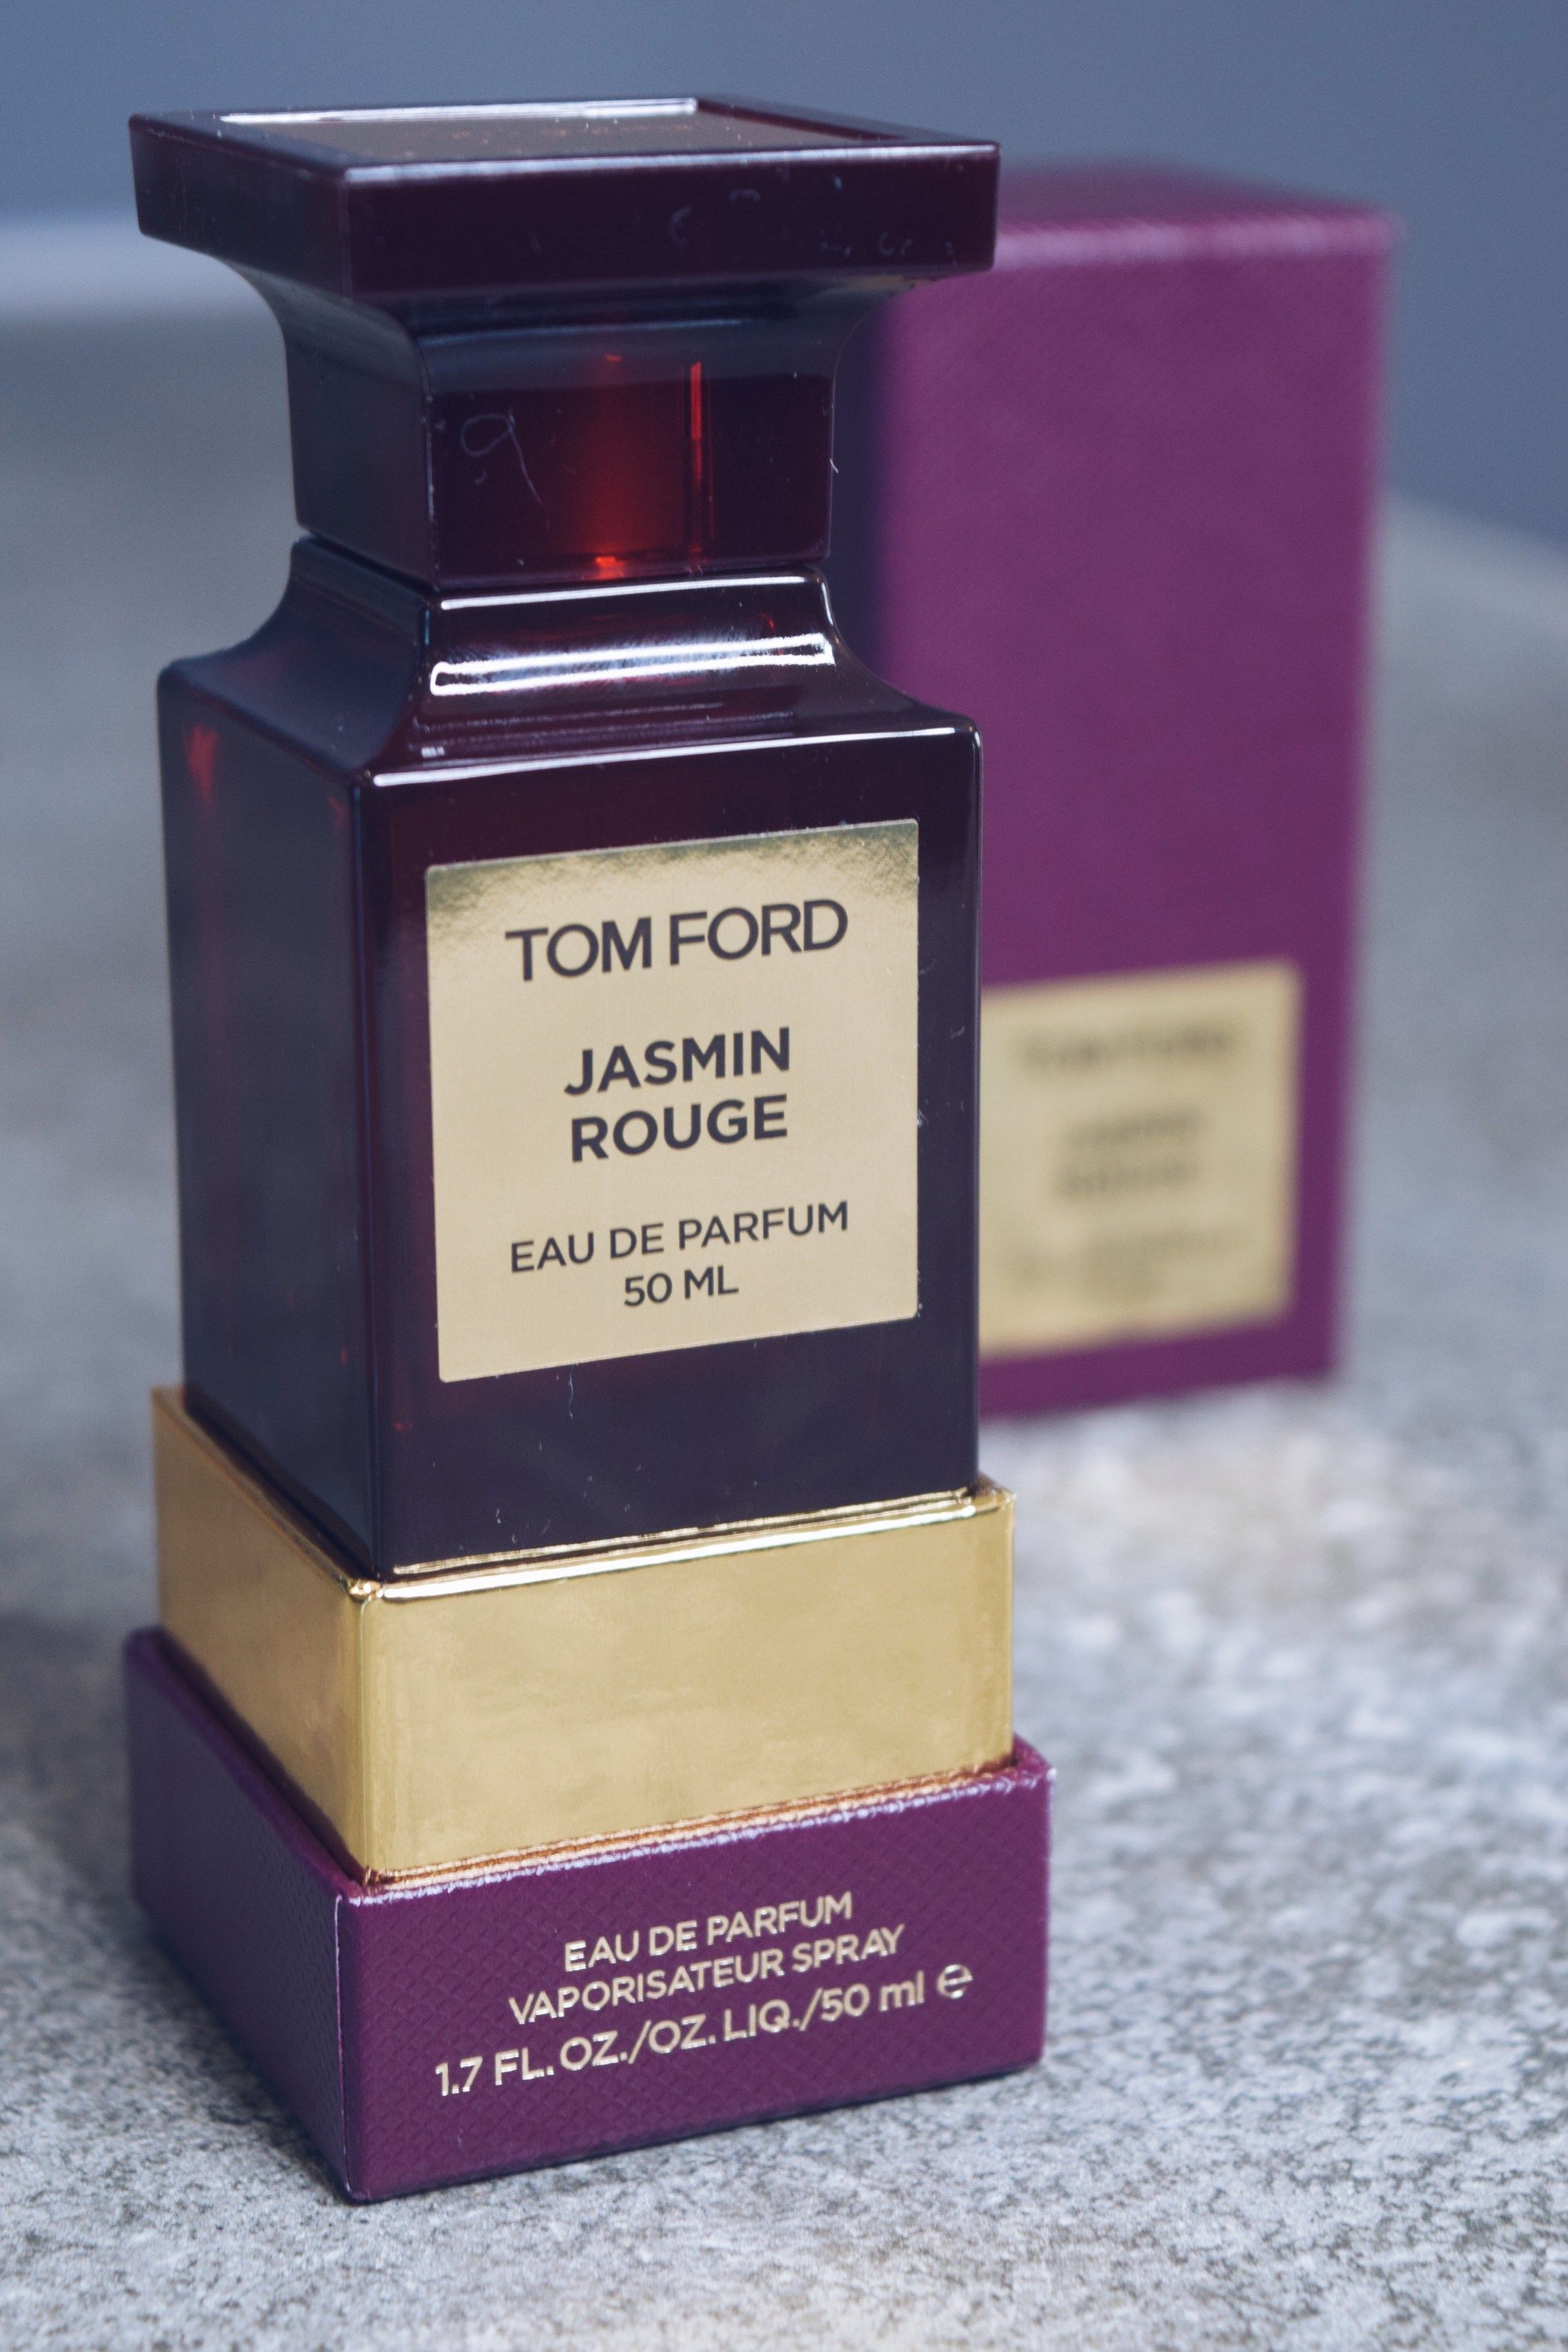 Tom Ford Jasmin Rouge Eau De Parfum Review Svaštara Rouge Tom